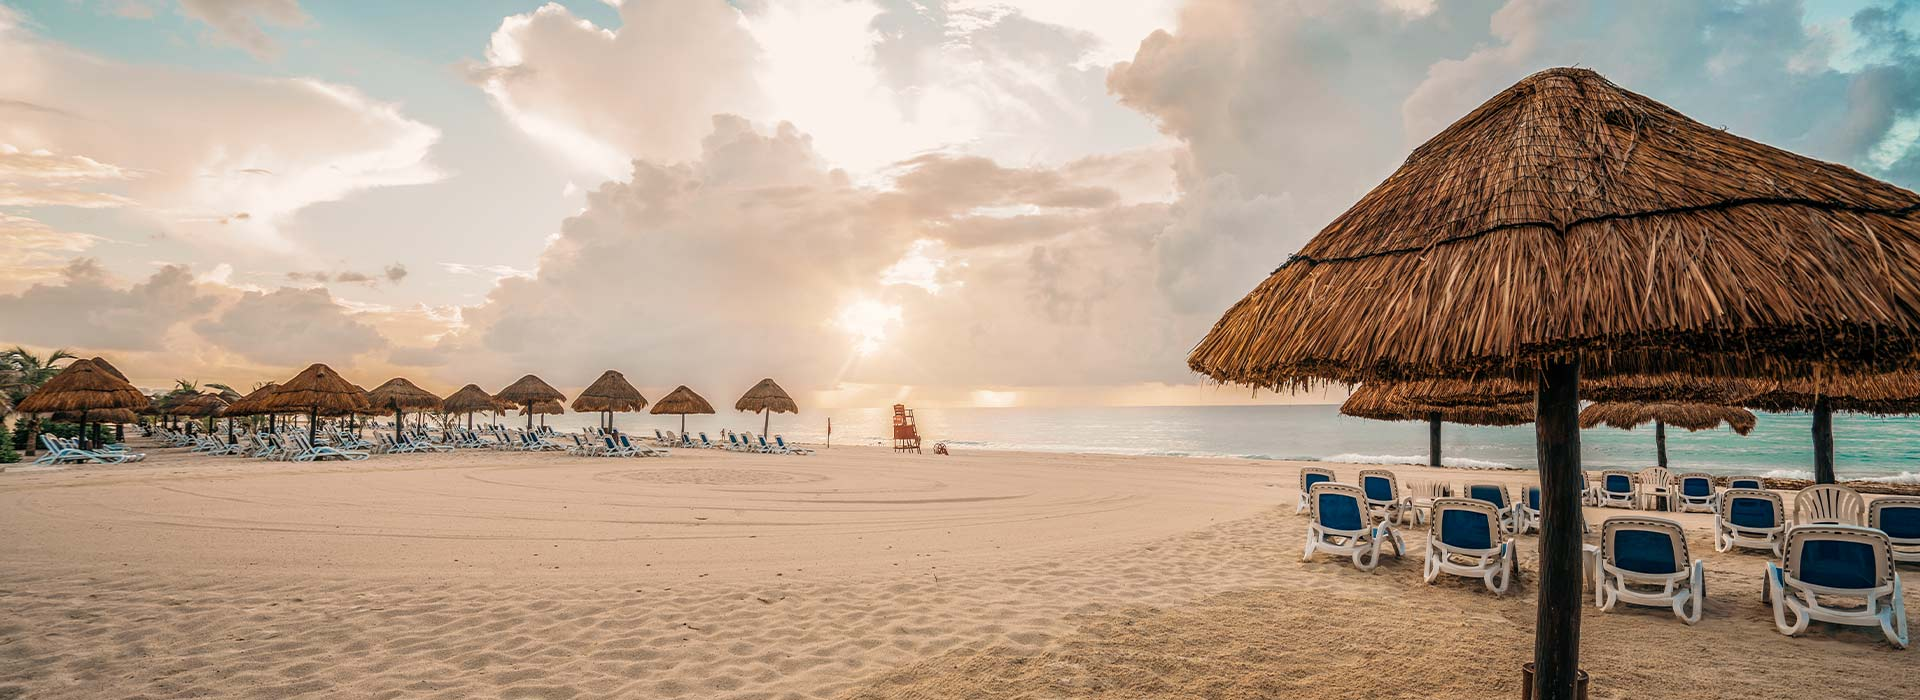 The most beautiful beachfront resort in Cancun with unparalleled oceanviews for a family vacation